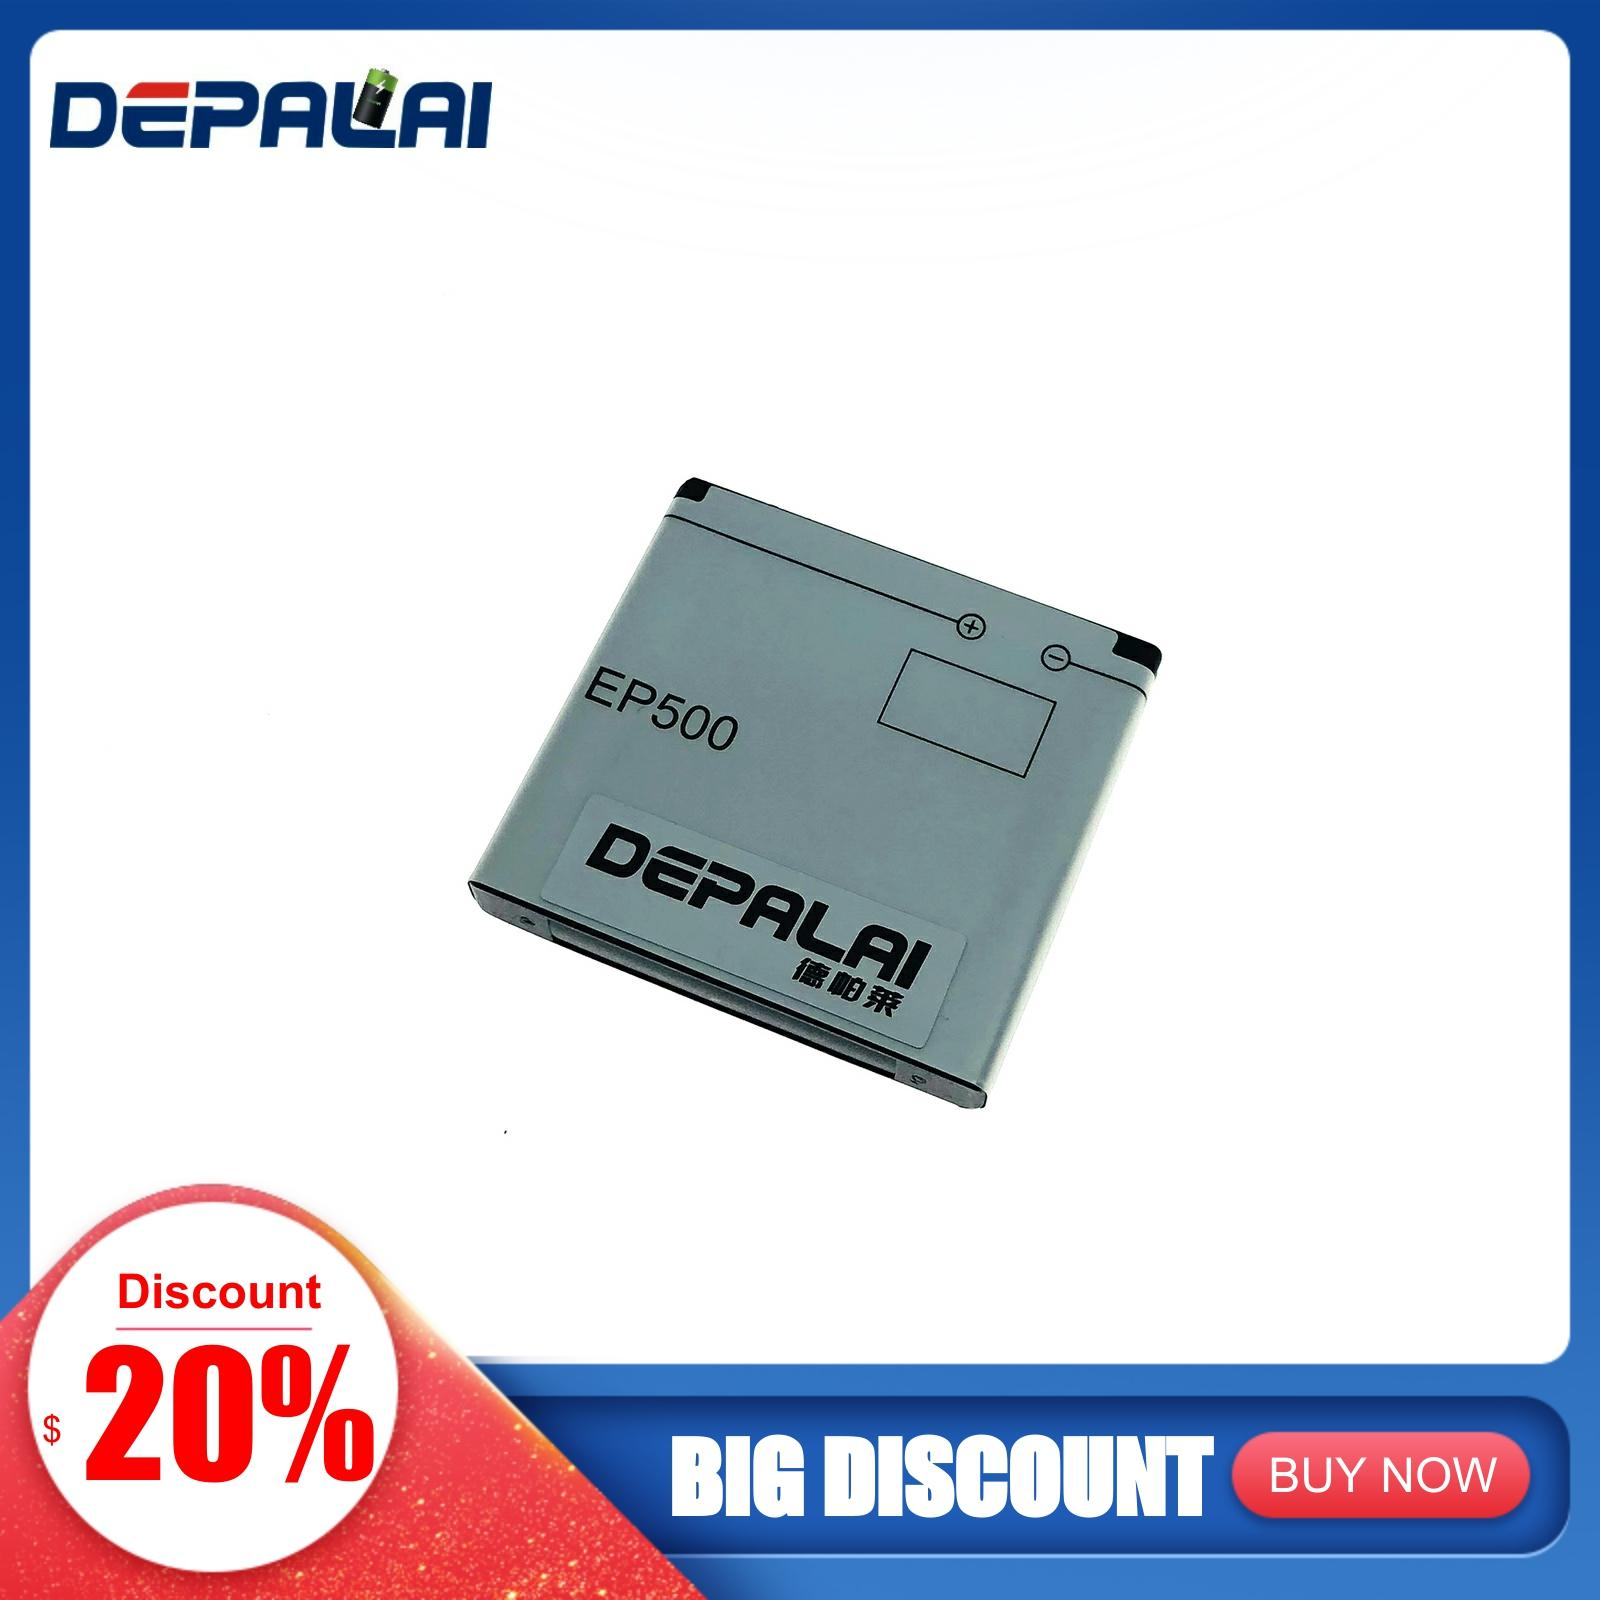 Good quality Replacement <font><b>Battery</b></font> For SONY ST17I ST15I SK17I WT18I X8 U5I E15i wt18i wt19i <font><b>EP500</b></font> <font><b>Battery</b></font> 1200mAh image